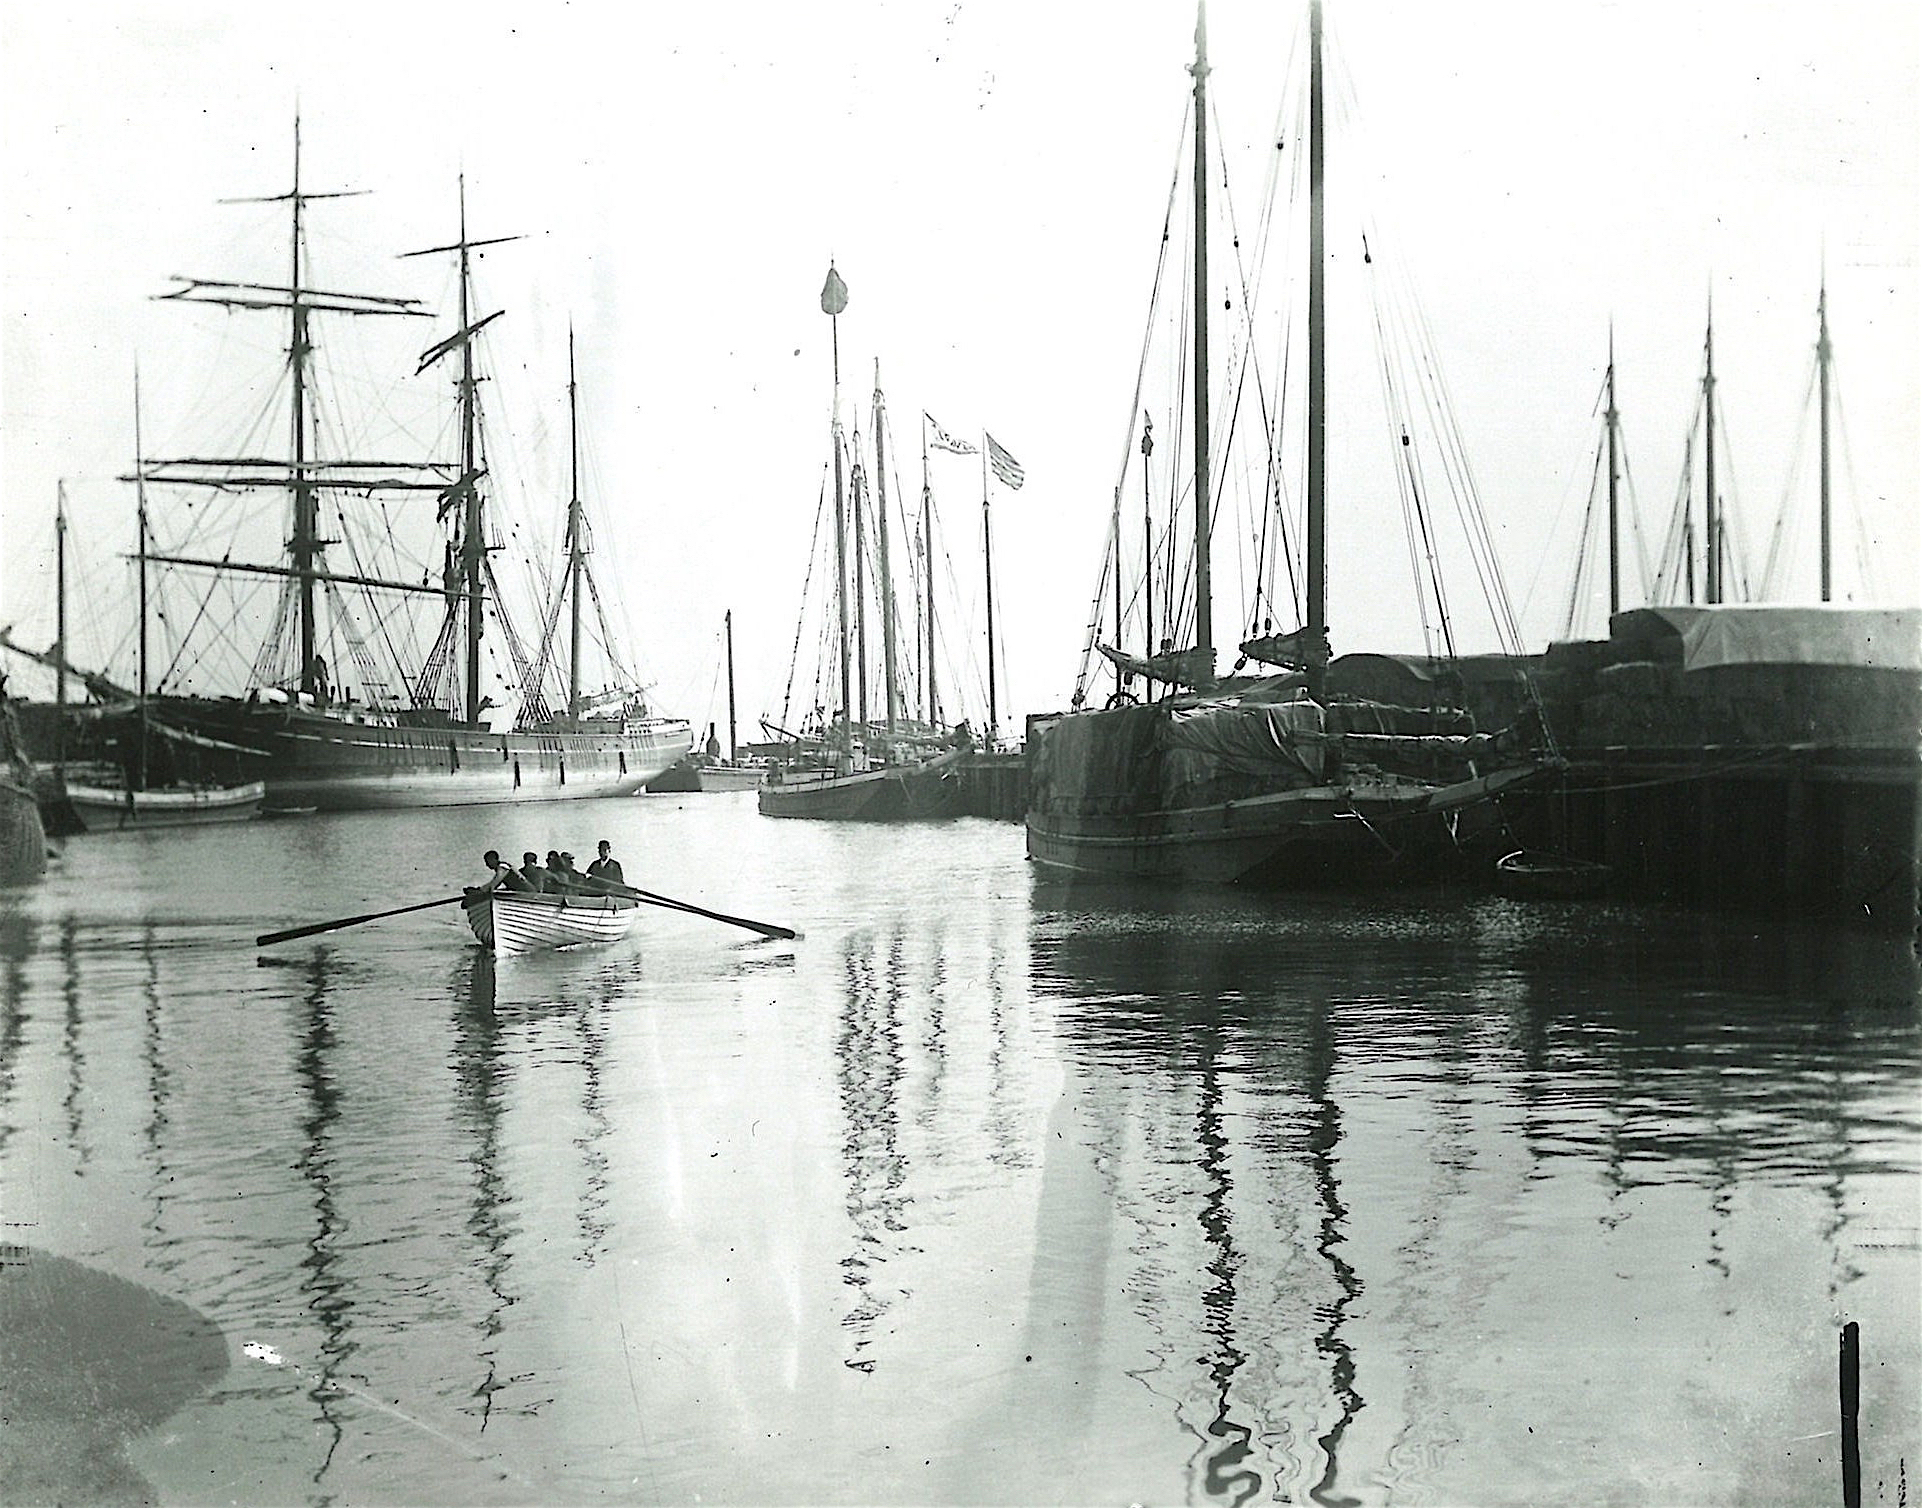 San Francisco harbor in the 1880s.